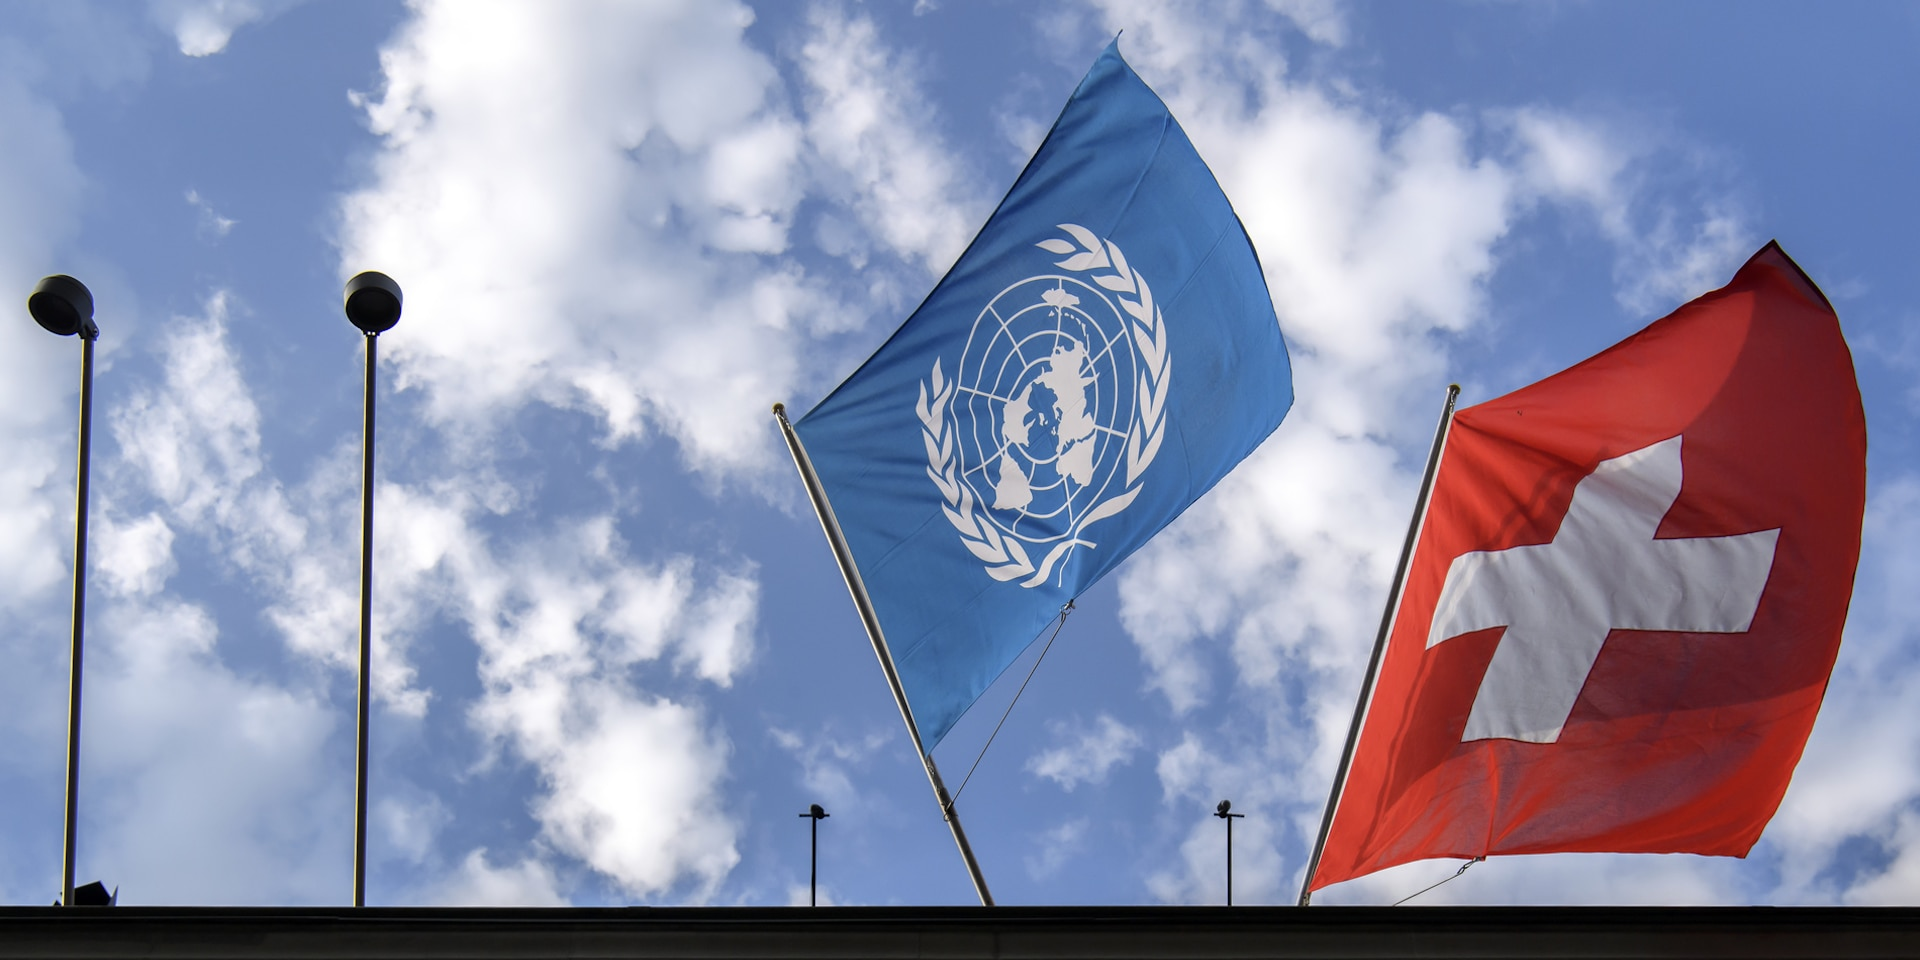 The UN flag, on the left, and the Swiss flag, on the right, flying above the Federal Palace.